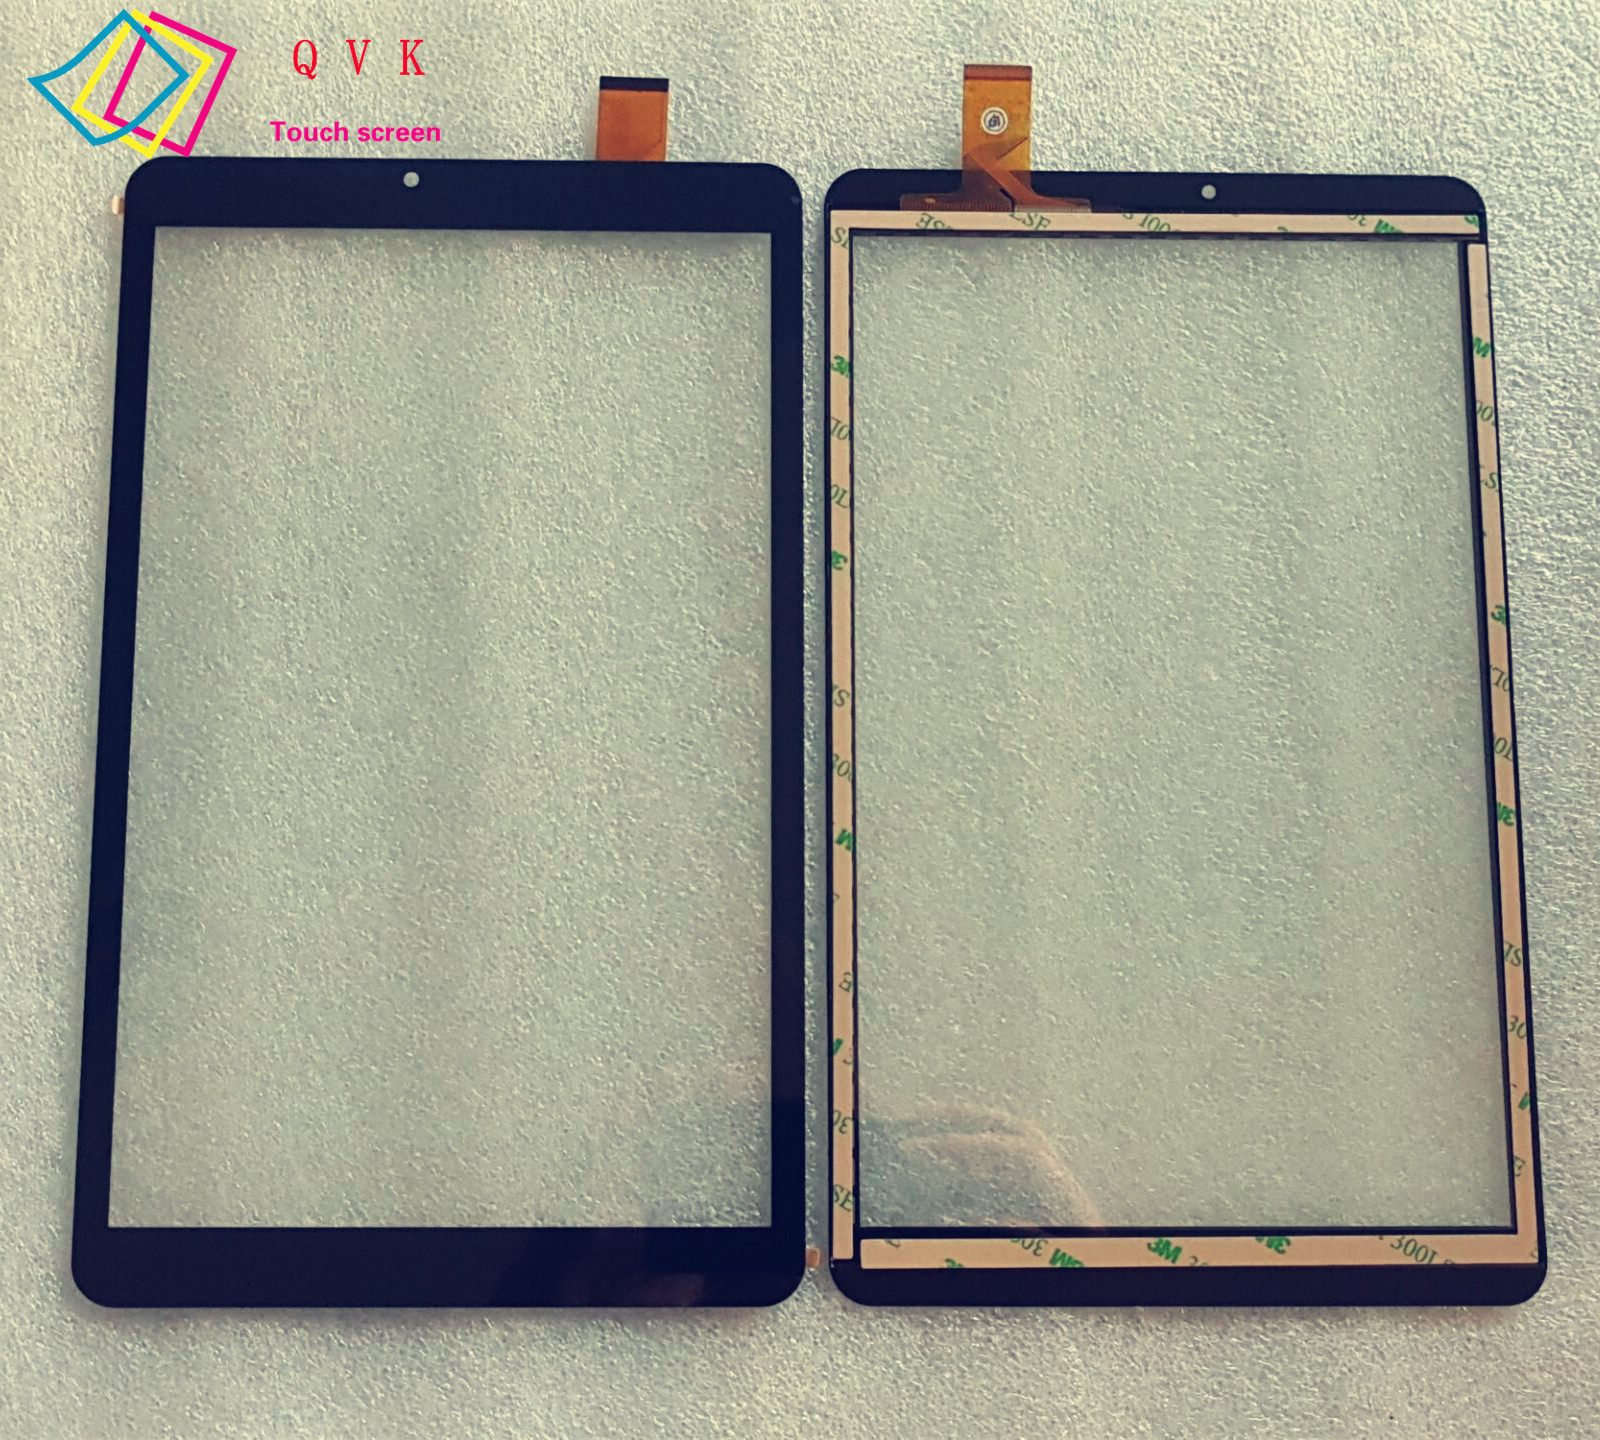 Black 10.1 Inch for Irbis TZ101 tablet pc capacitive touch screen glass digitizer panel Free shipping original new 8 inch ntp080cm112104 capacitive touch screen digitizer panel for tablet pc touch screen panels free shipping